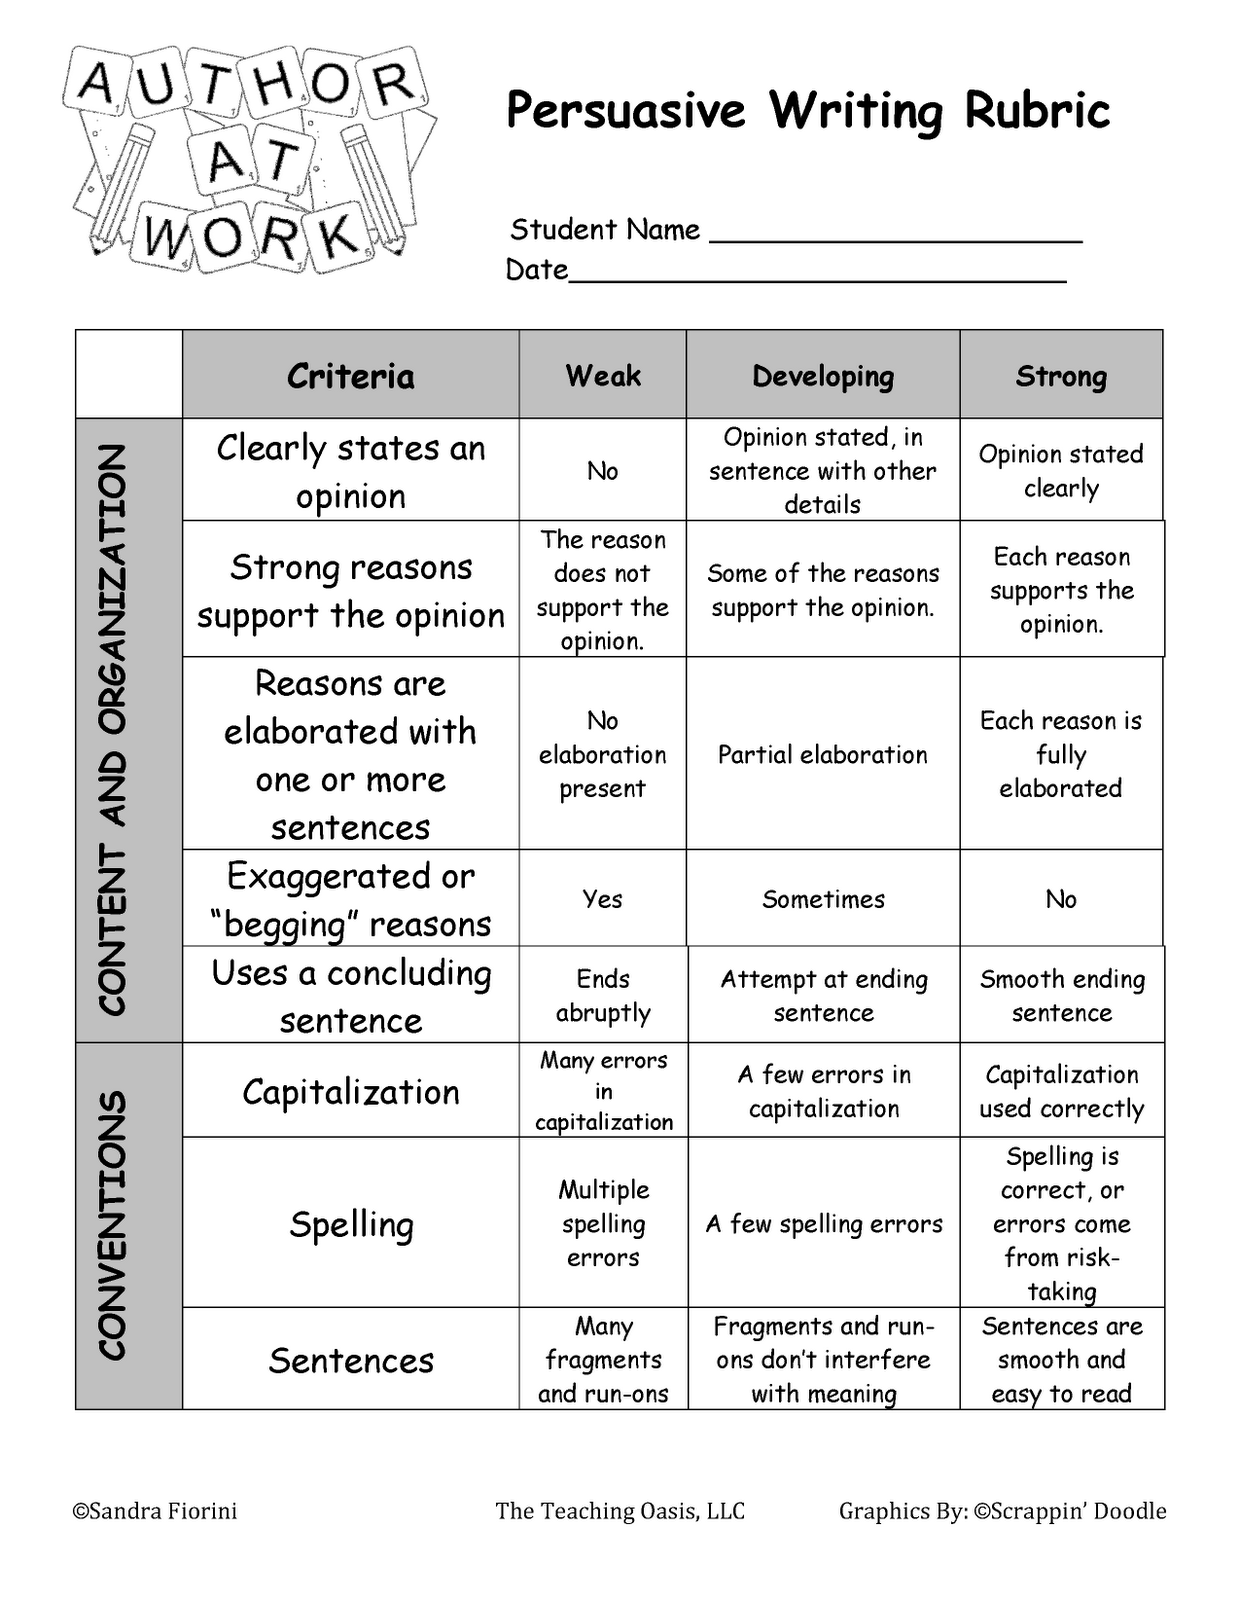 persuasive writing topics for 5th graders Here are 24 thought-provoking prompts to jump-start persuasive writing the common core writing skills these prompts allow students to experiment with a variety of types of writing with a common purpose the writing cycle these open-ended prompts are appropriate for a wide range of grade levels and abilities.